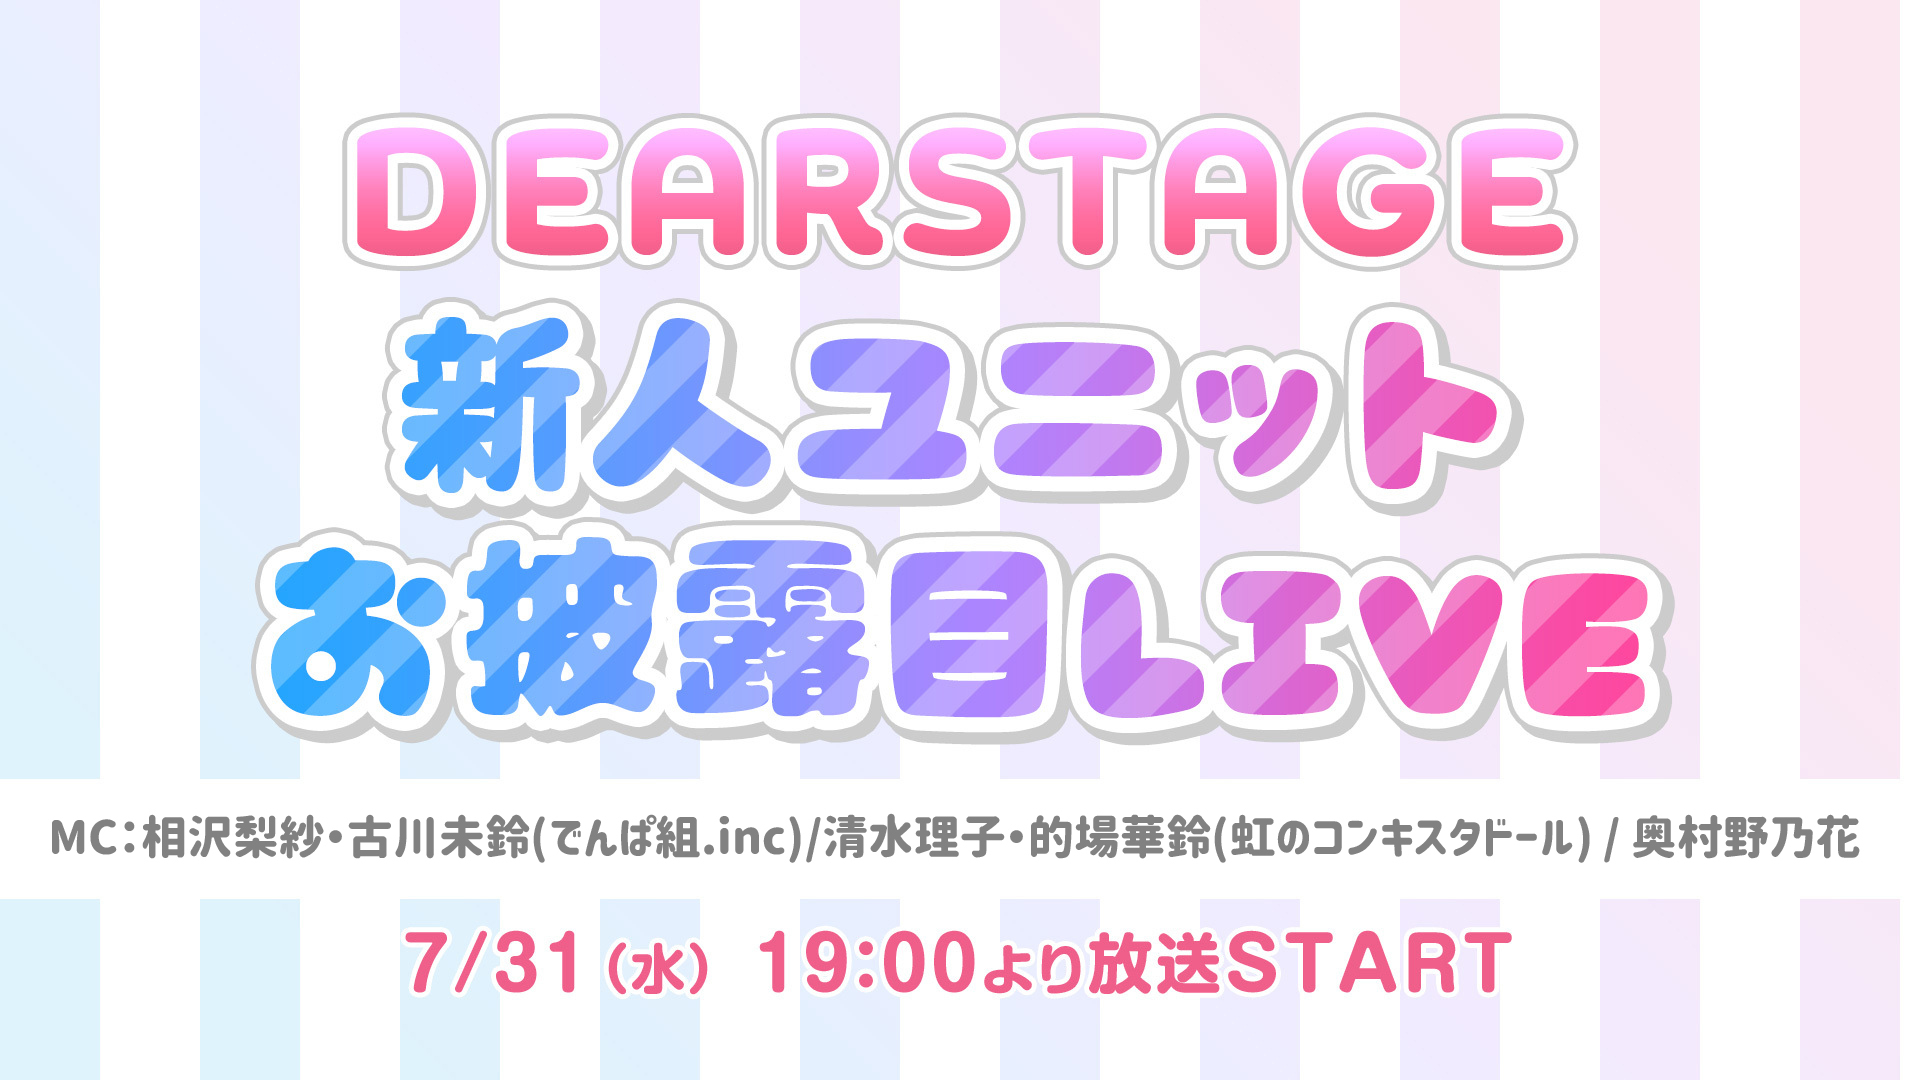 Dearstage新人ユニットお披露目live生中継 でんぱ組 相沢梨紗 古川